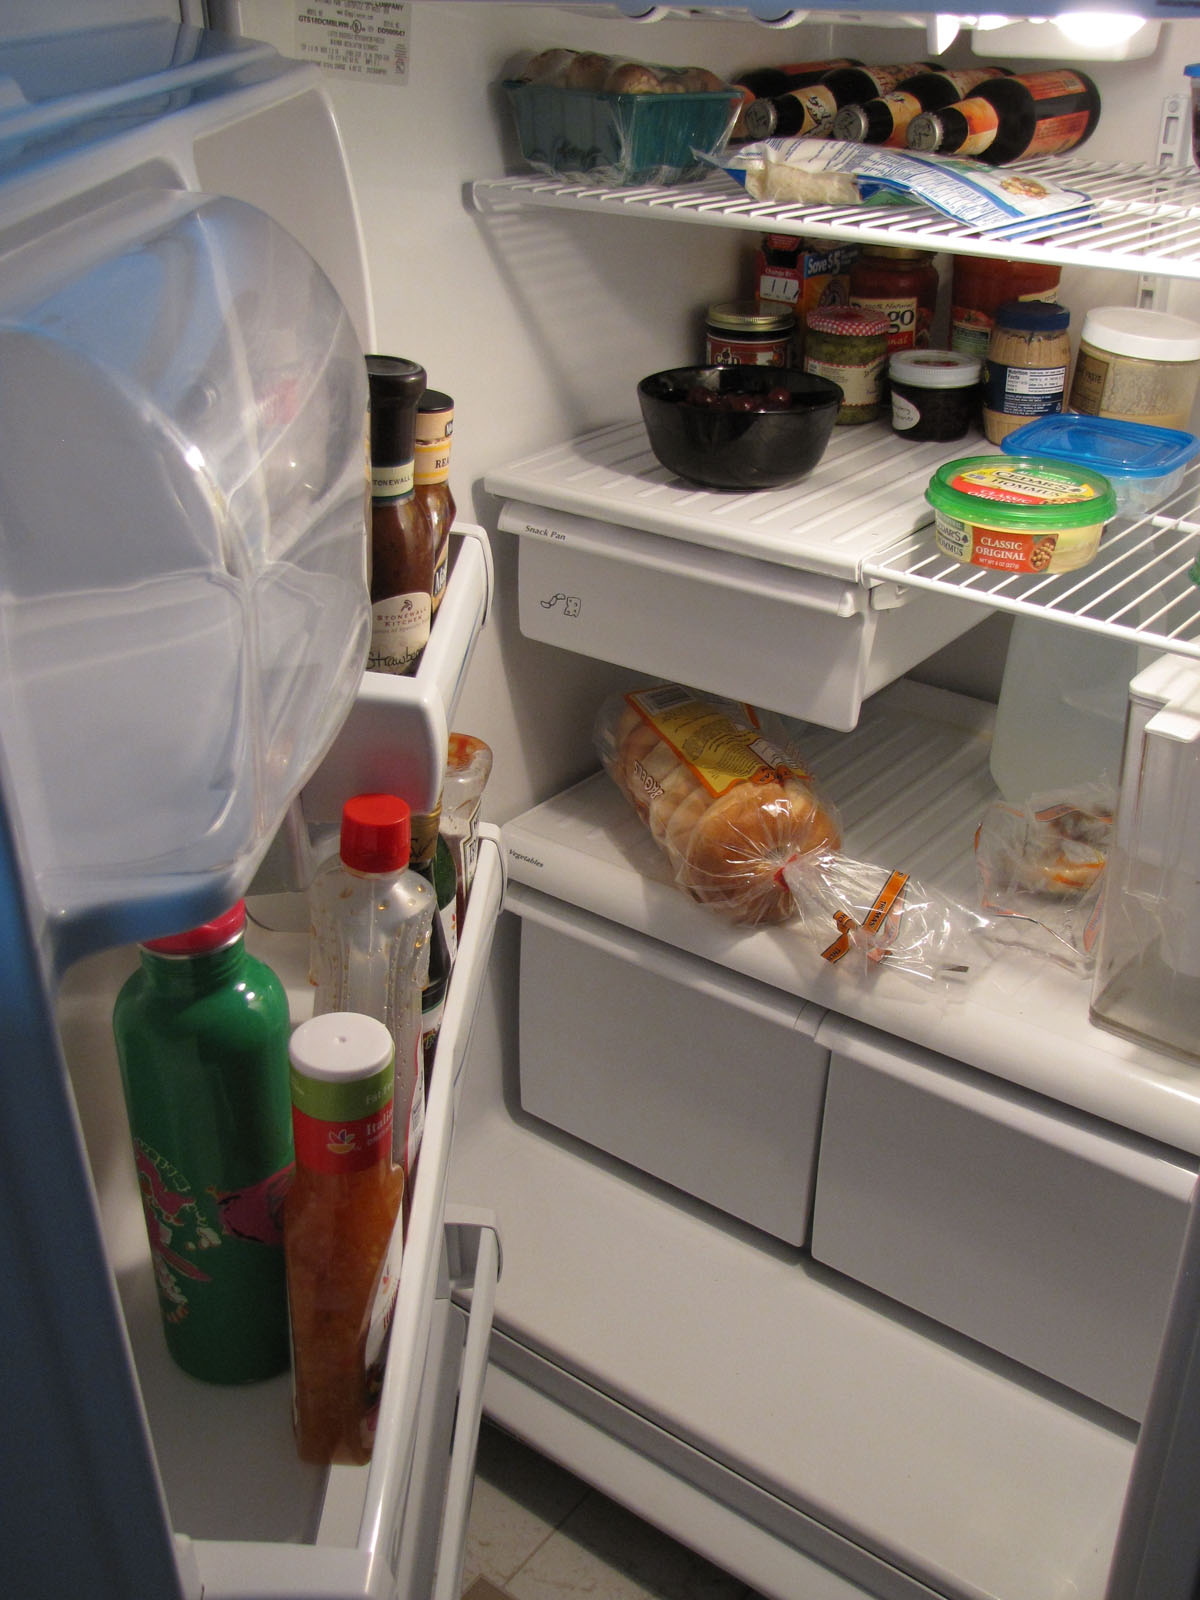 February 15: Inside My Fridge